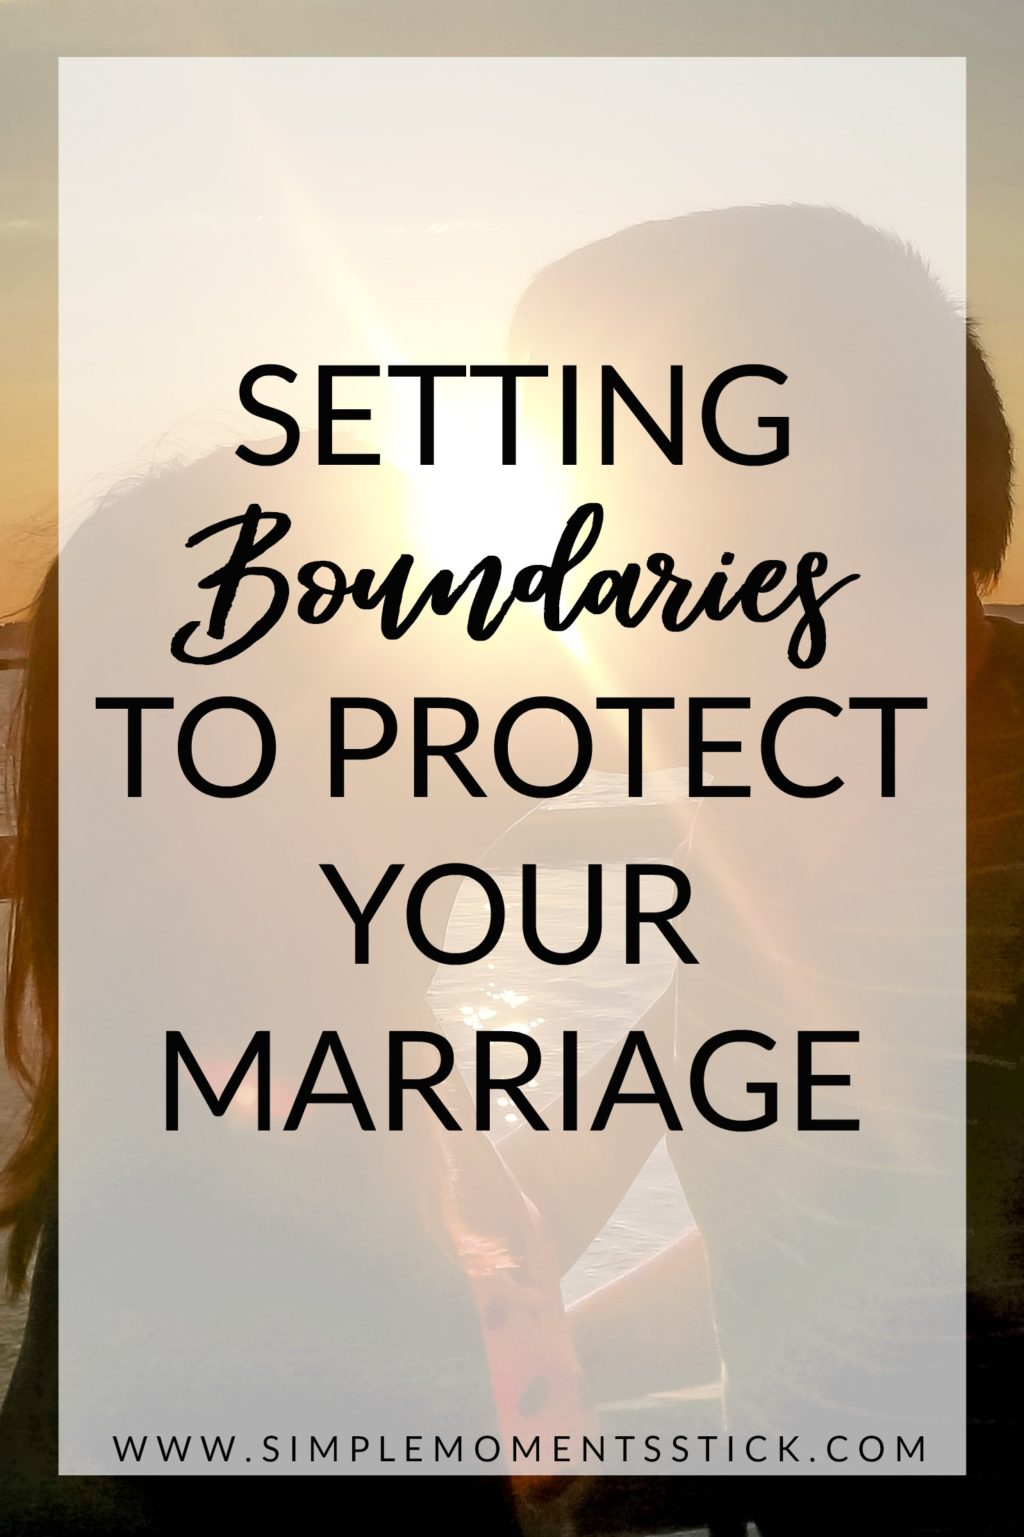 How to set boundaries to protect marriage